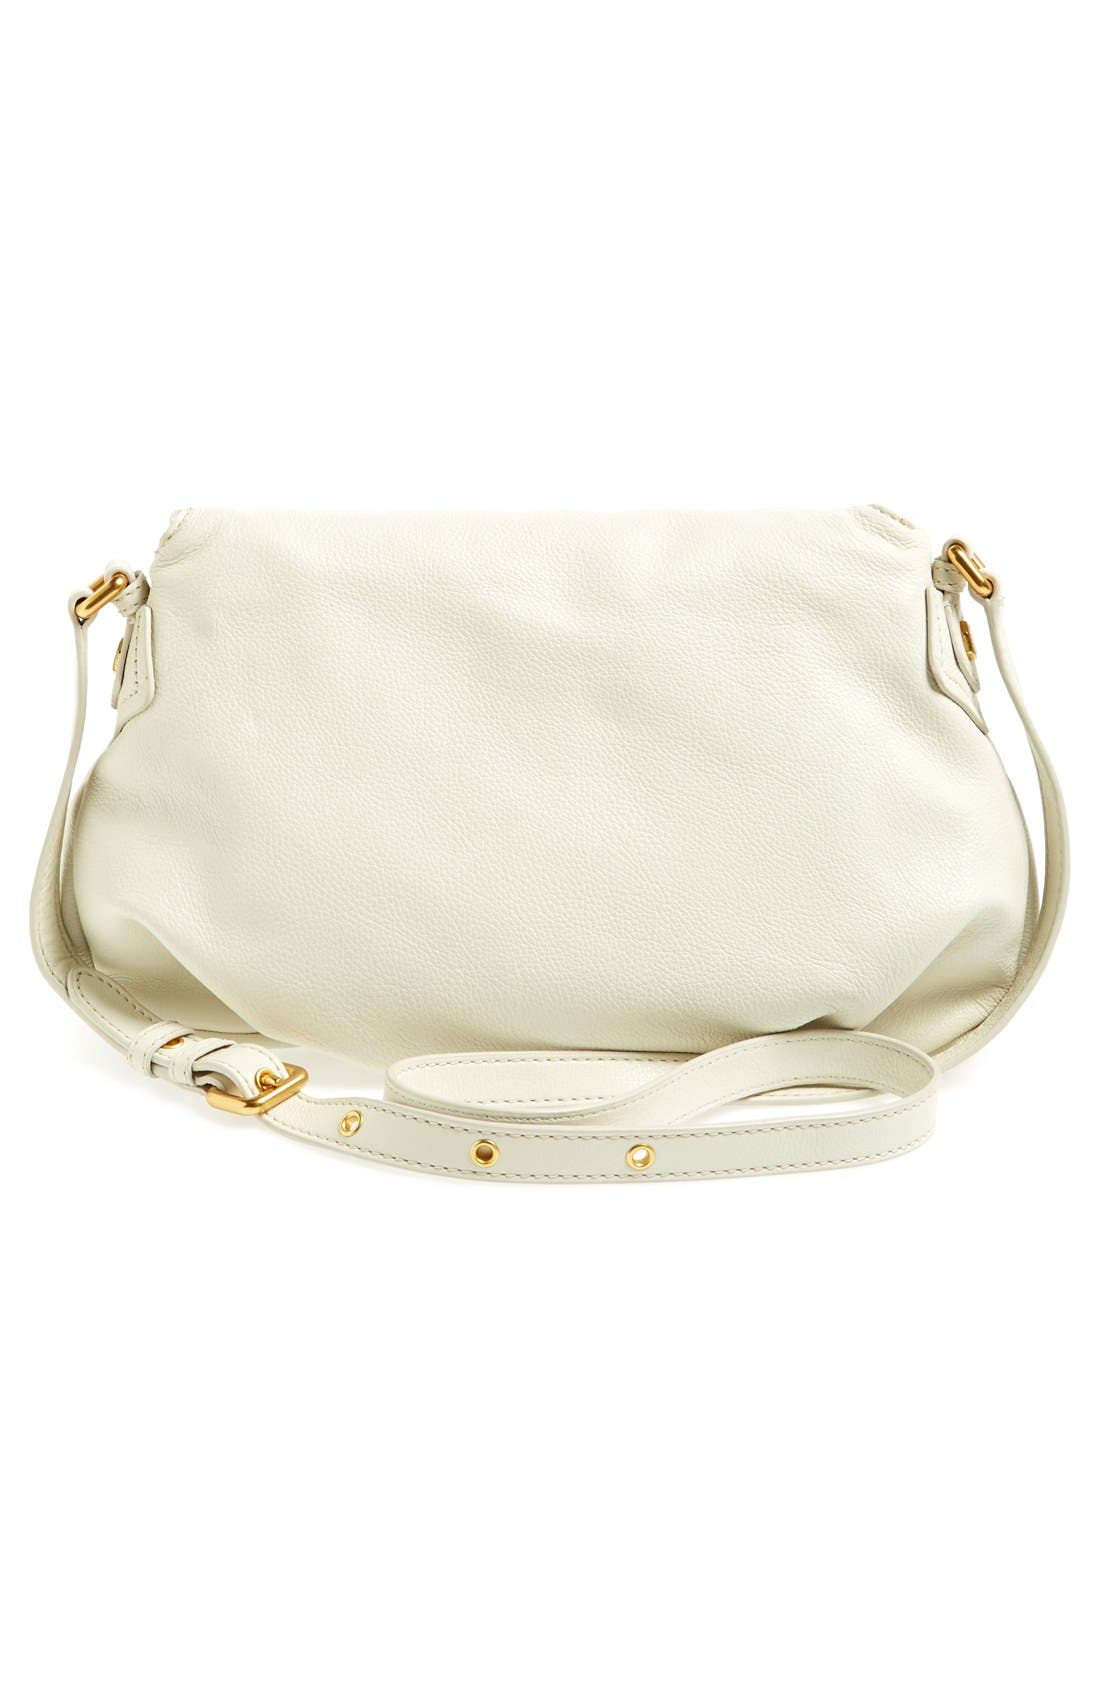 MARC BY MARC JACOBS 'Classic Q - Natasha' Crossbody Bag,                             Alternate thumbnail 24, color,